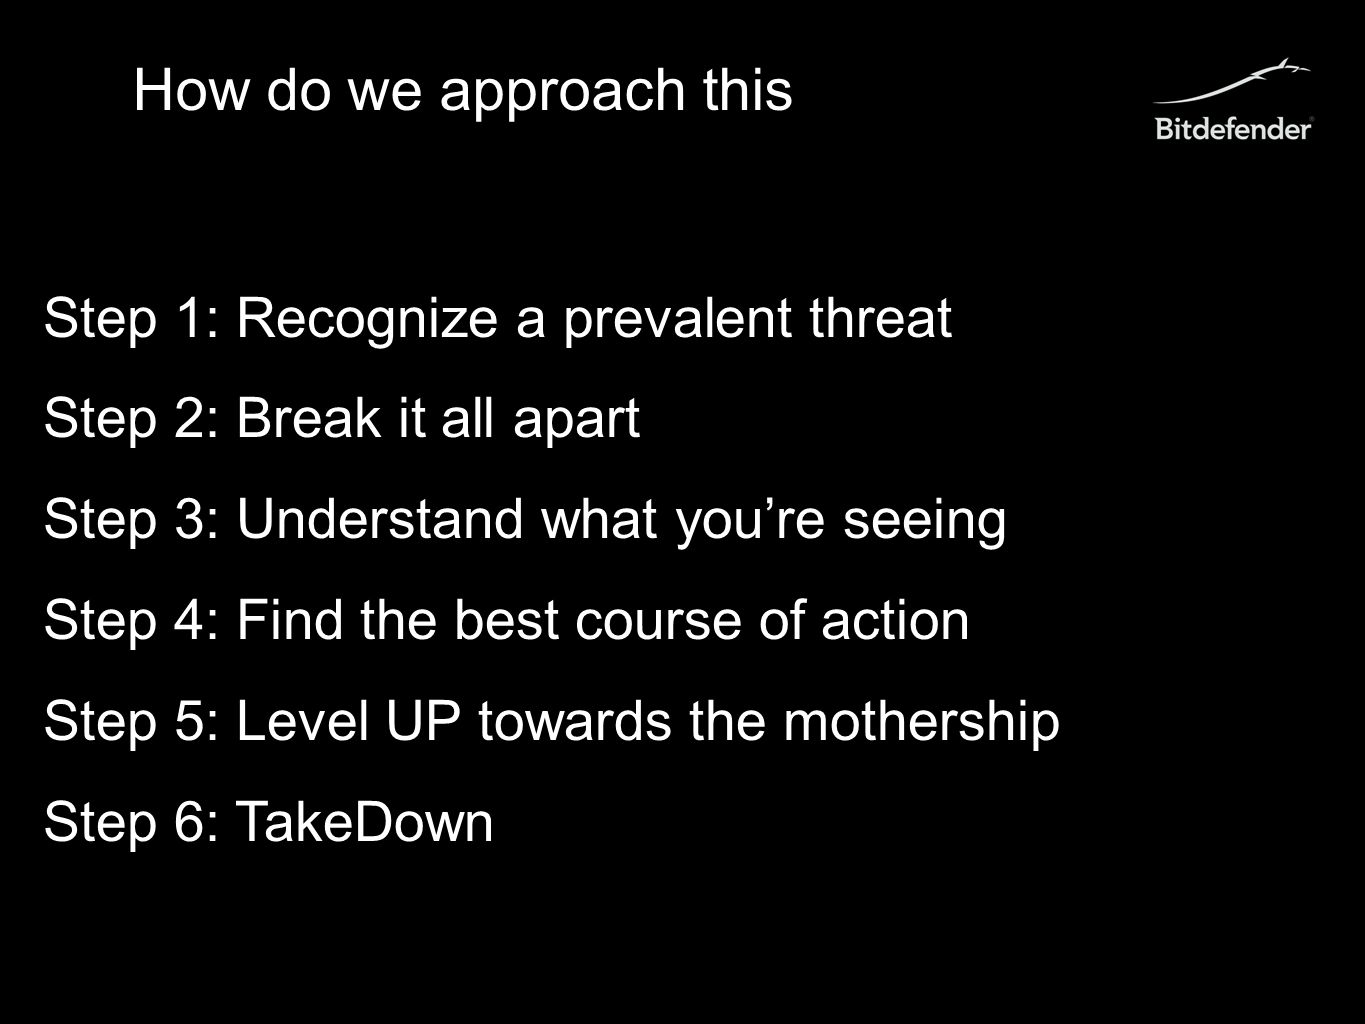 How do we approach this Step 1: Recognize a prevalent threat Step 2: Break it all apart Step 3: Understand what you're seeing Step 4: Find the best course of action Step 5: Level UP towards the mothership Step 6: TakeDown